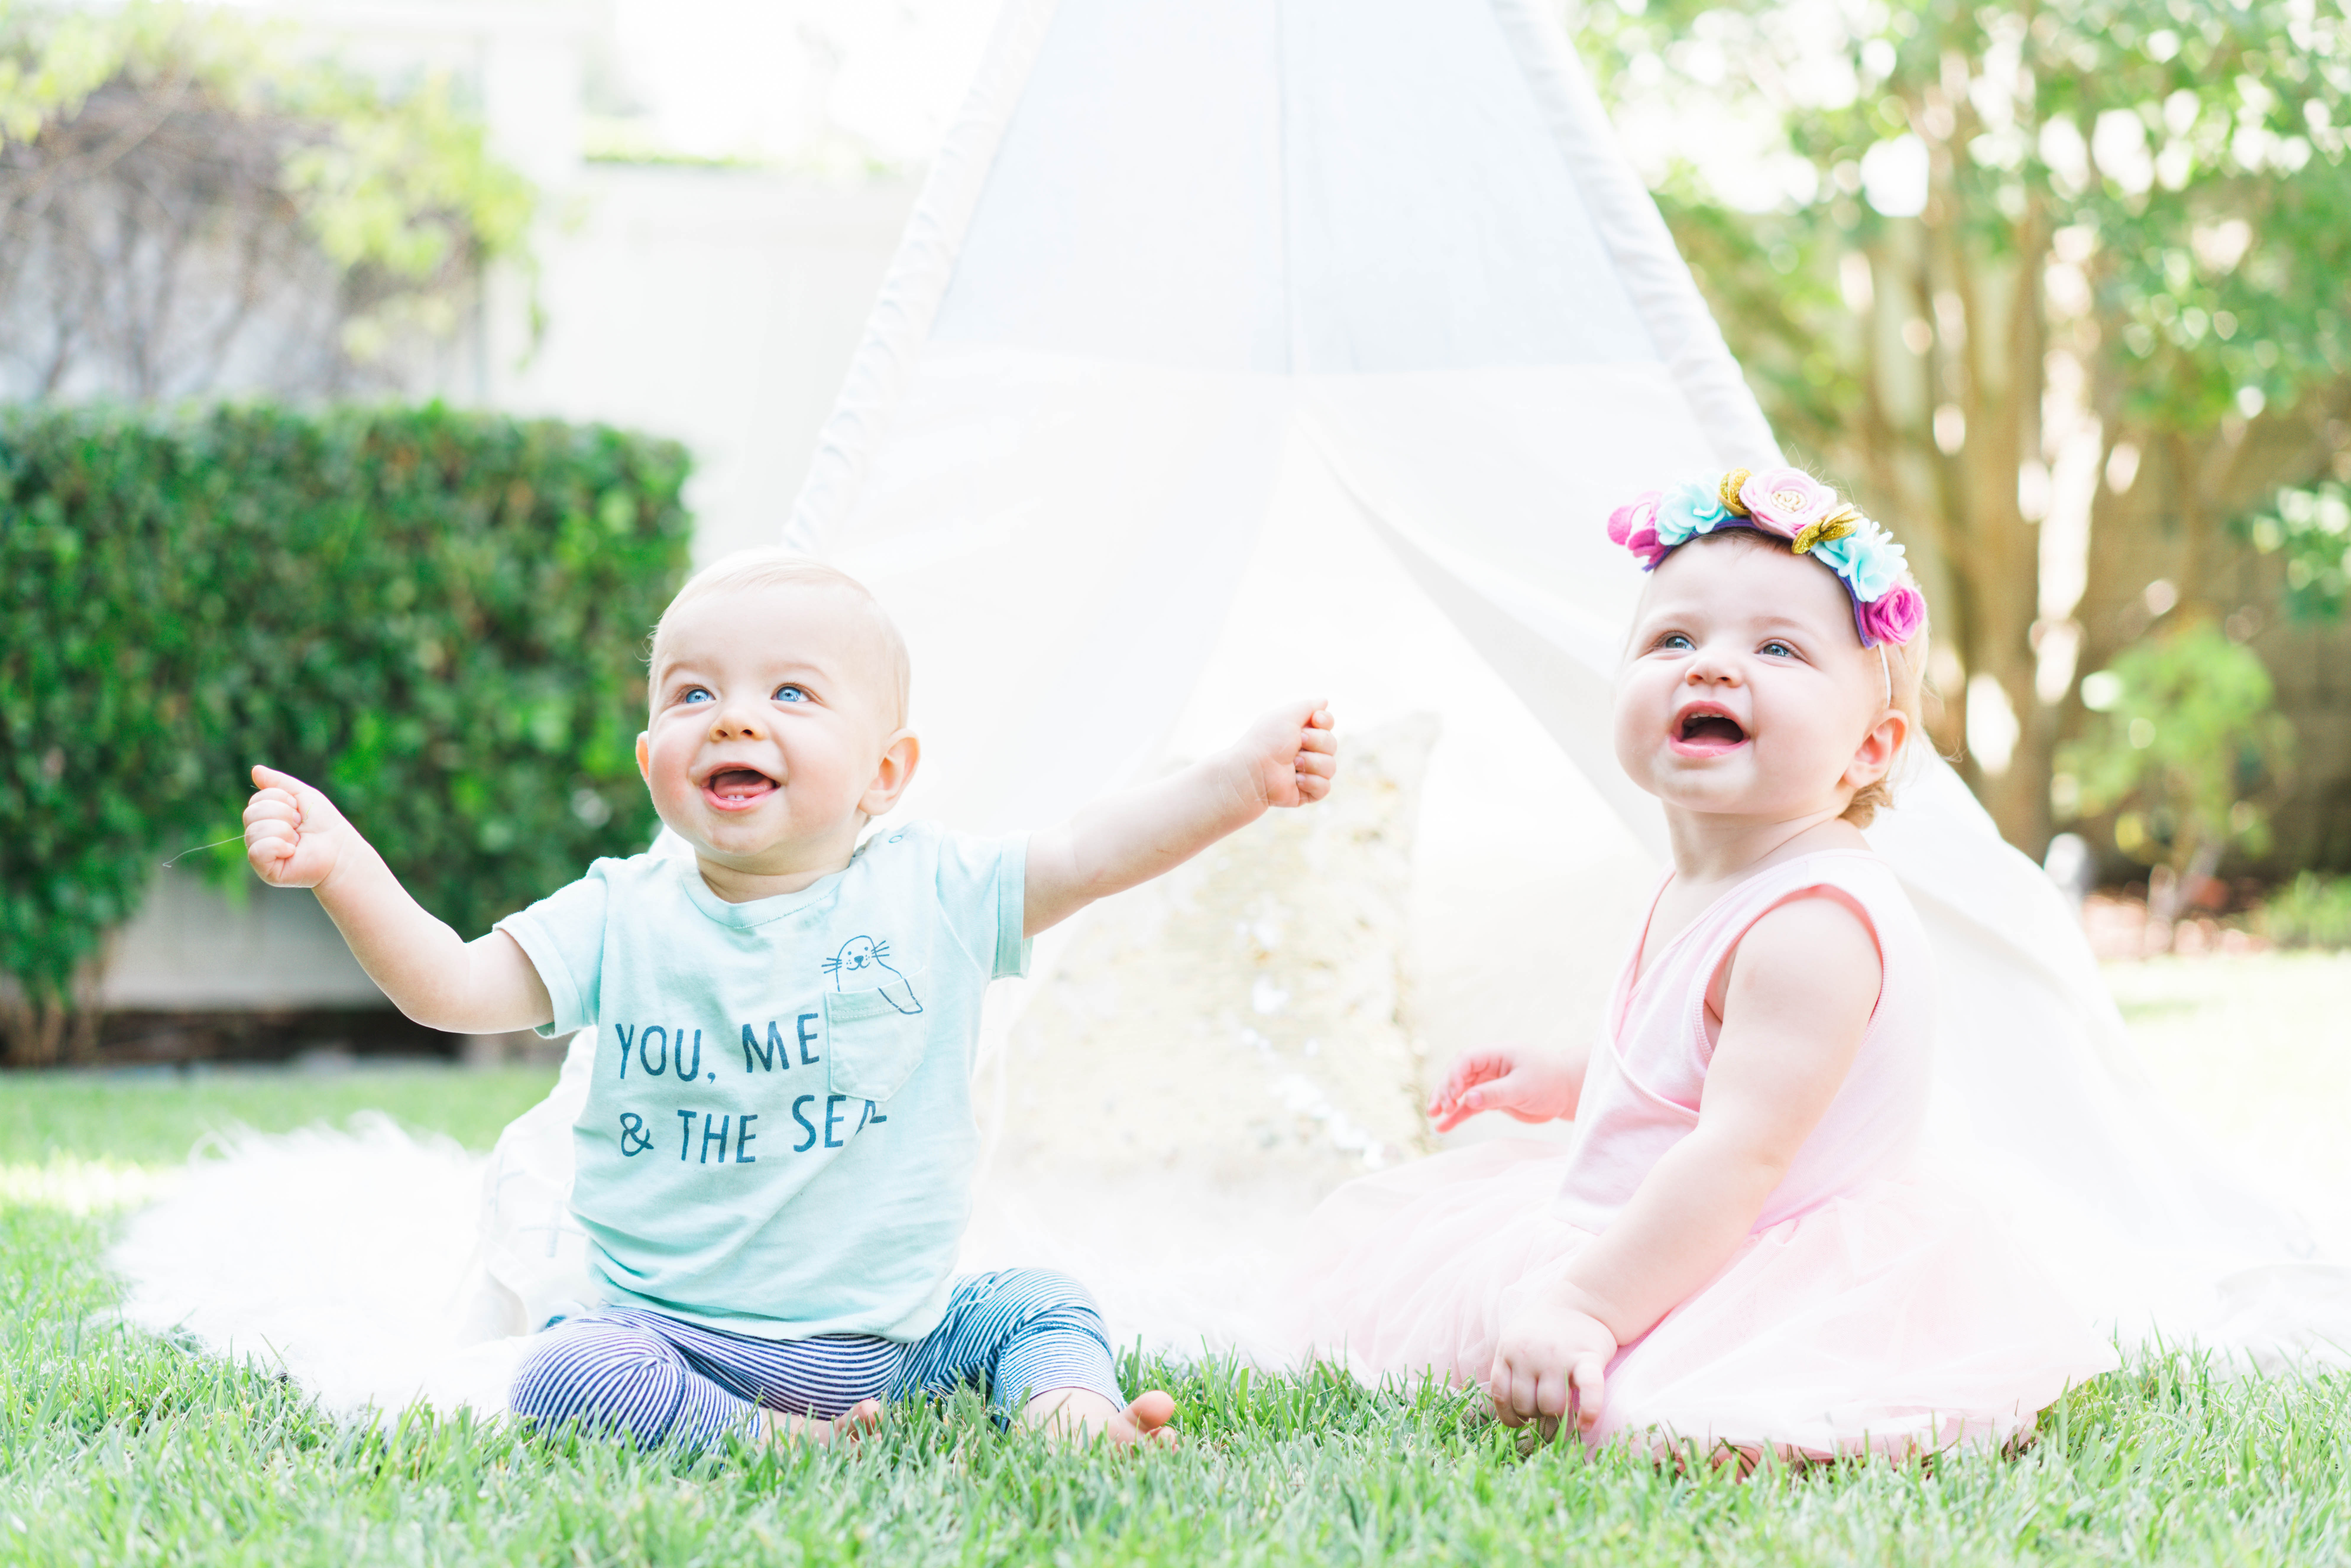 Katelyn Jones A Touch of Pink Land of Nod Tee Pee Play time